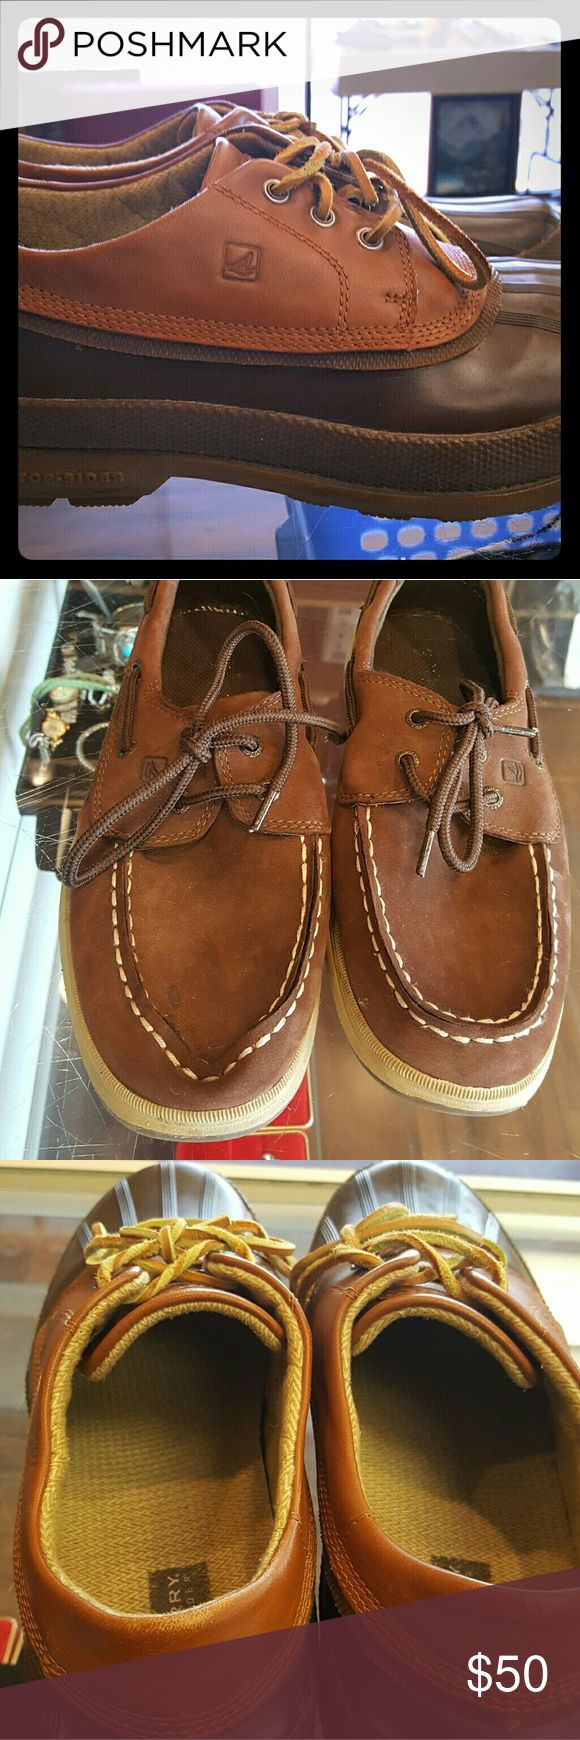 Sperry men's shoes Nice men's Sperry shoes gently used Sperry Top-Sider Shoes Boat Shoes